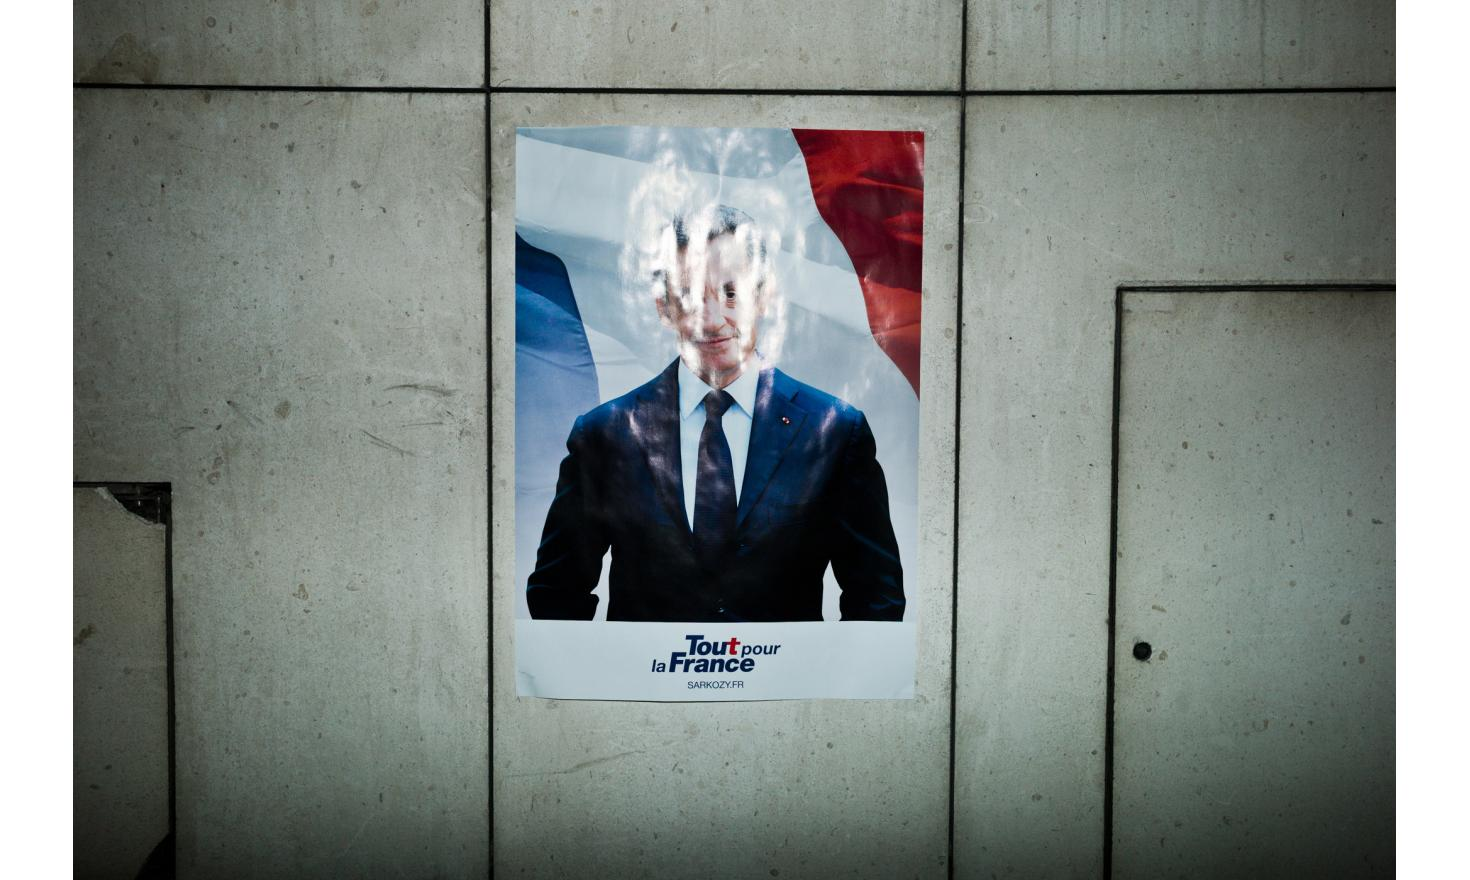 In front of Nicolas Sarkozy's headquarters during the results of the first round. He is eliminated.